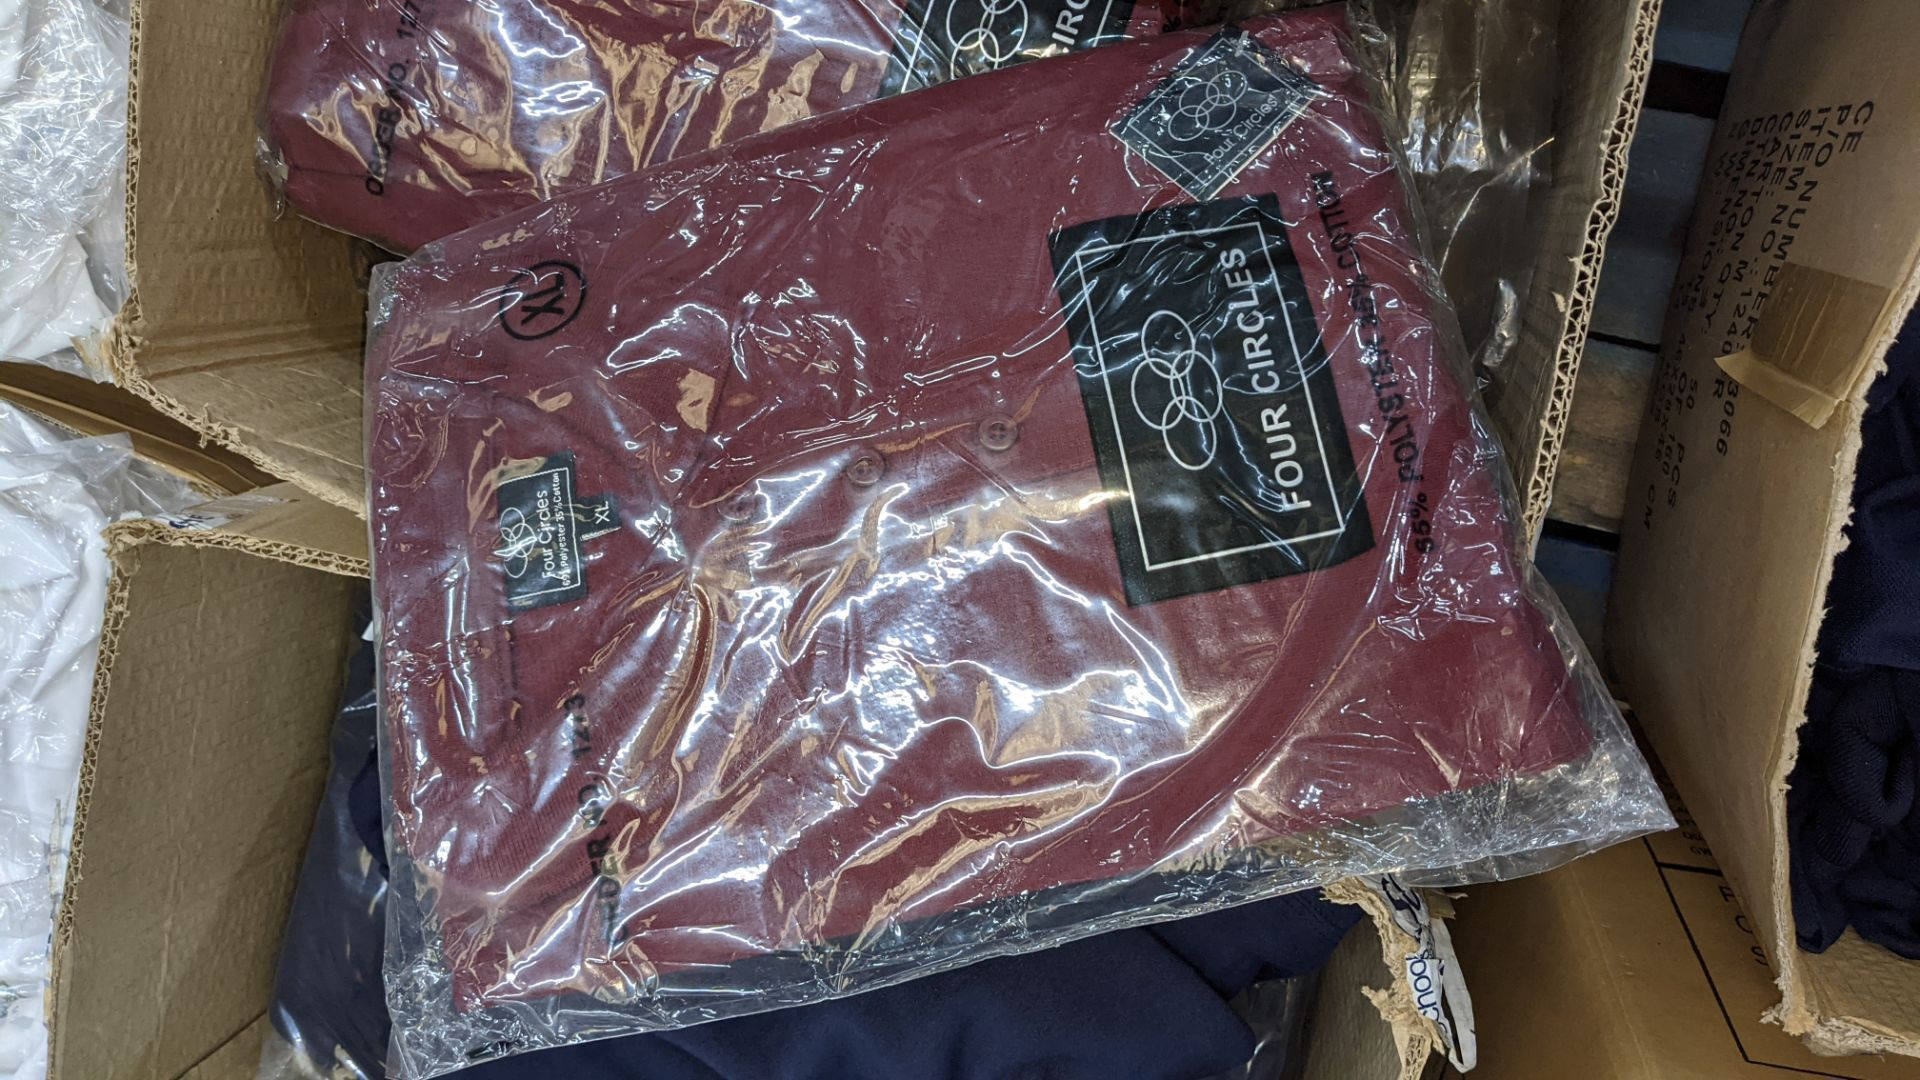 Approx 17 off assorted polo shirts by Four Circles in blue, burgundy & grey - 1 large box - Image 4 of 5